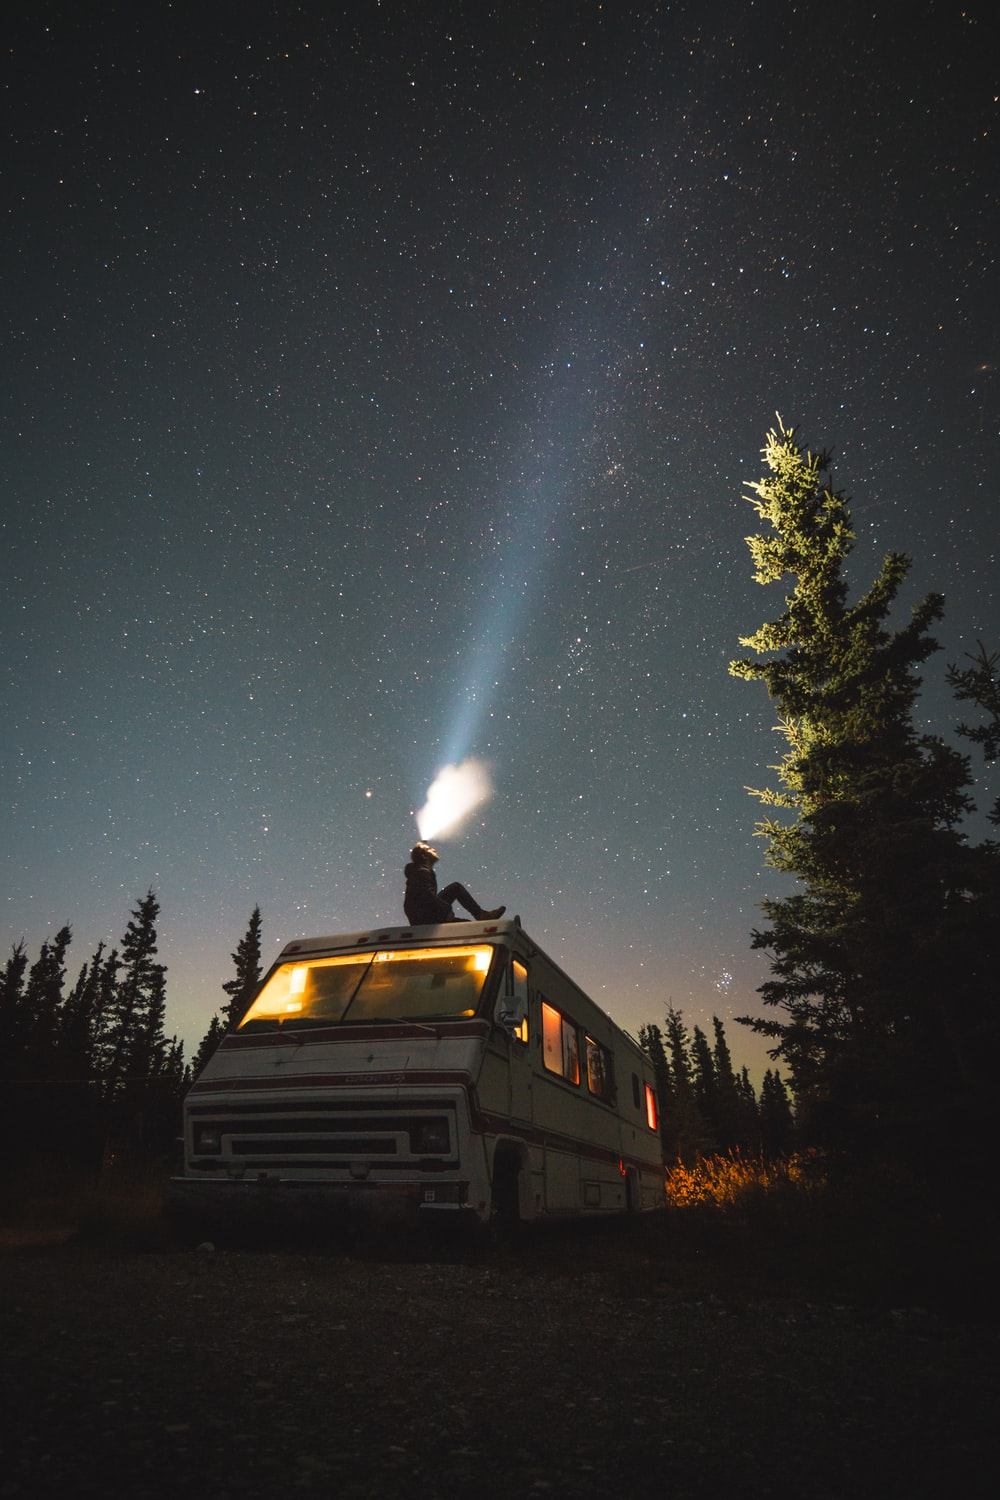 person sits on top of van at night